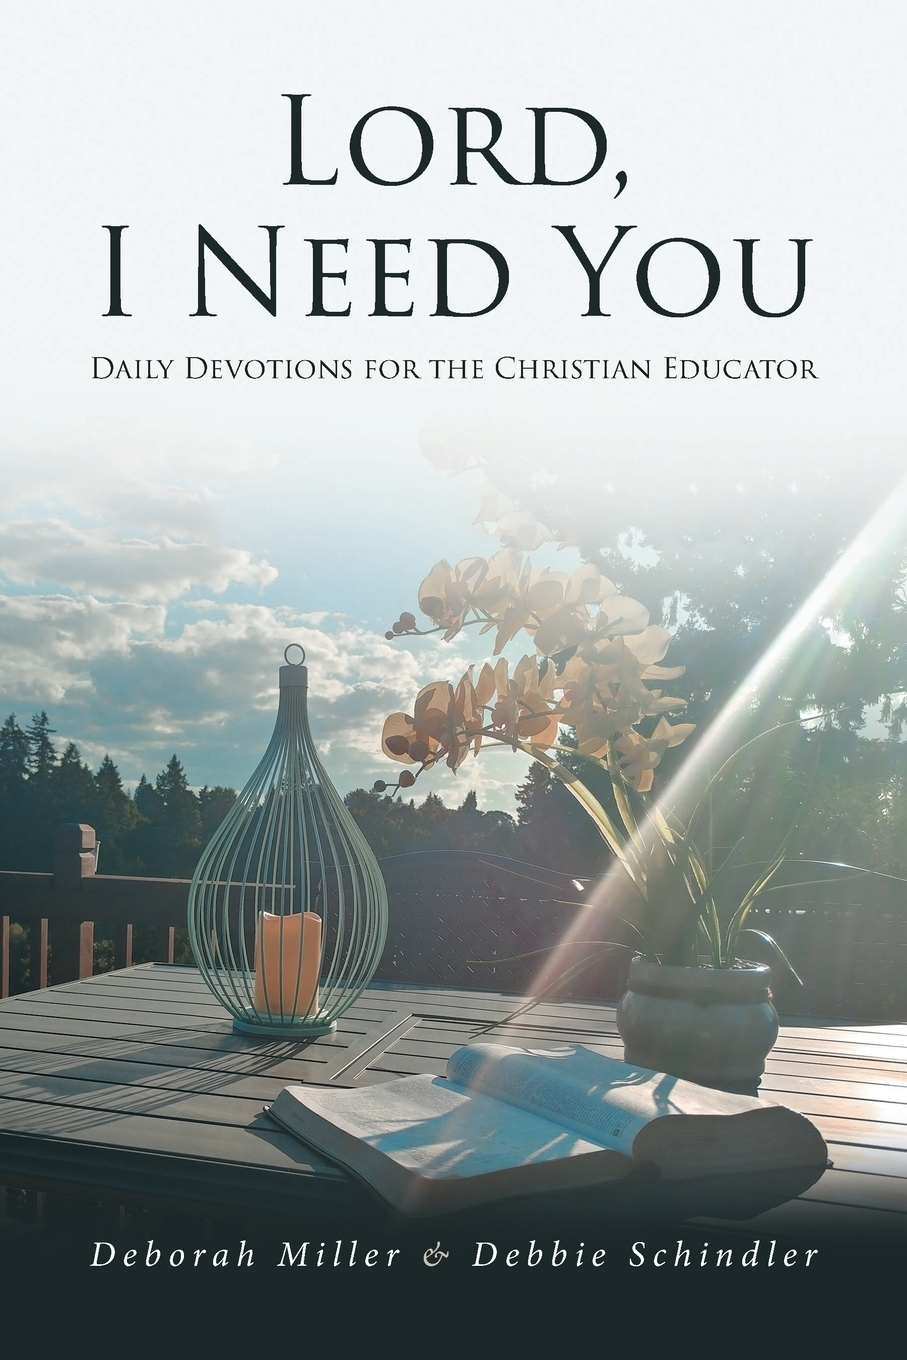 Deborah Miller, Debbie Schindler. Lord, I Need You. Daily Devotions for the Christian Educator